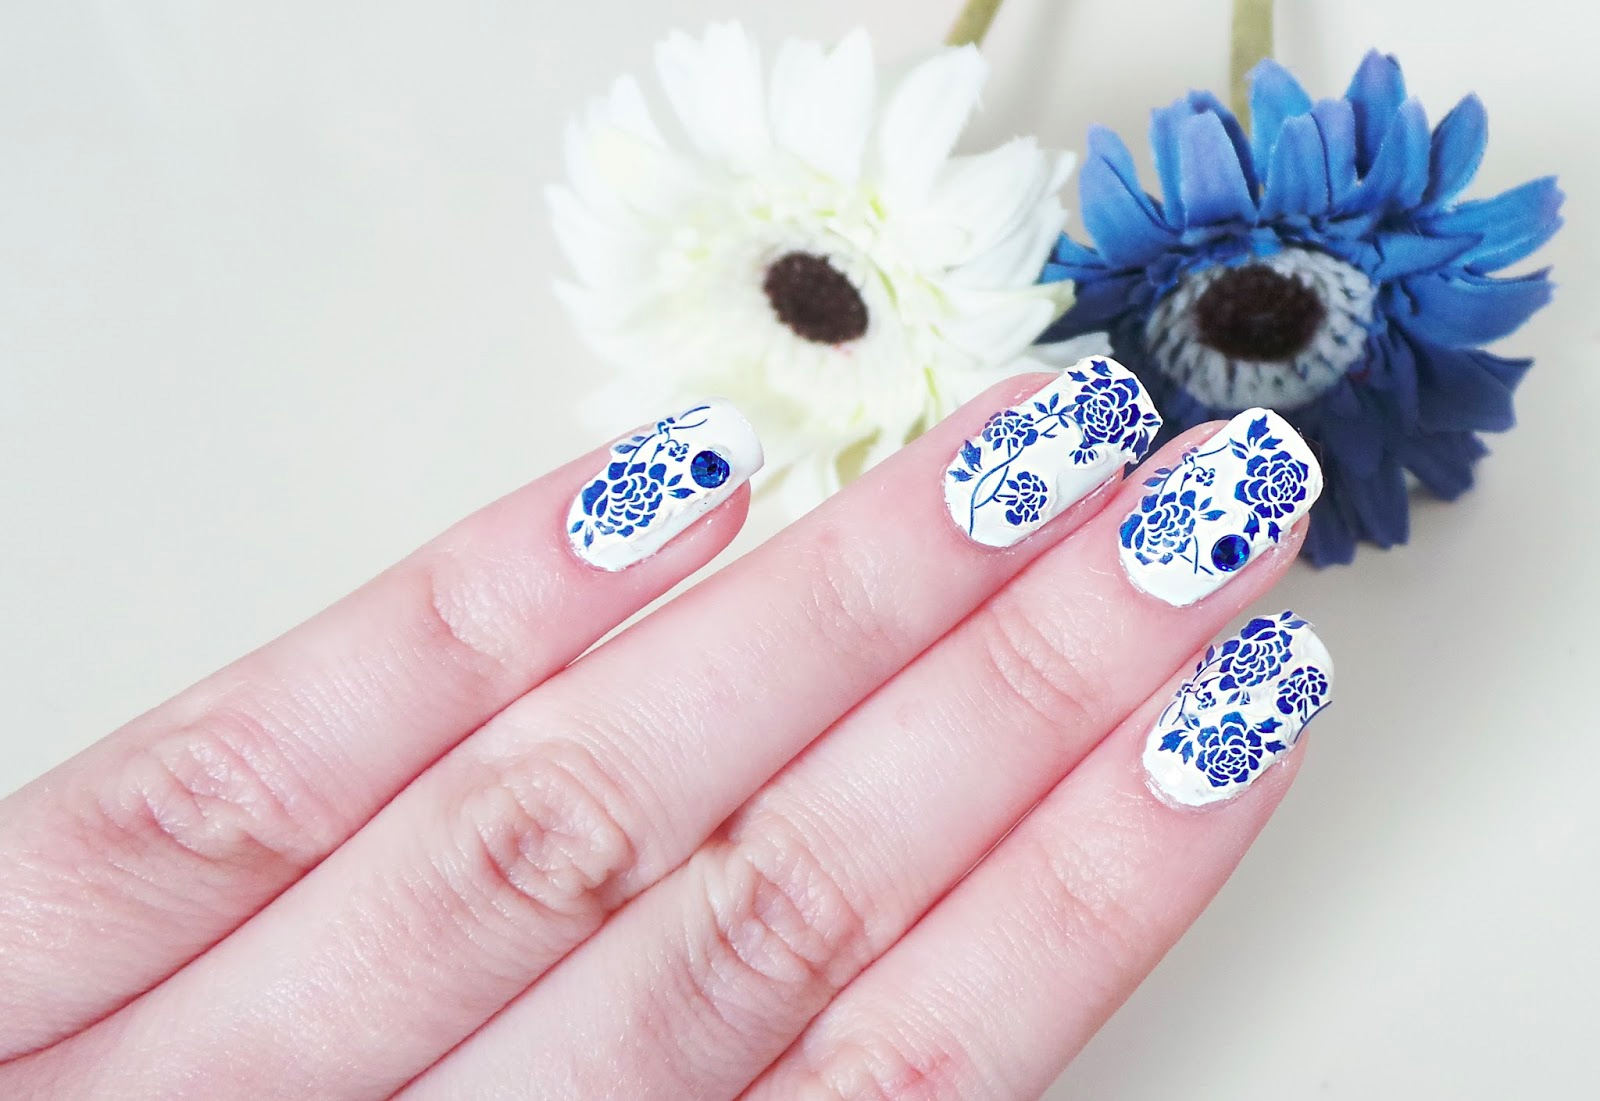 3D Chinese Painting Blue Flower Nail Stickers(E141) from Born Pretty Store, nail art, nail designs, nail stickers, NOTD, nail art blog, nail blogger, bblogger, beauty blogger, born pretty store blog review,